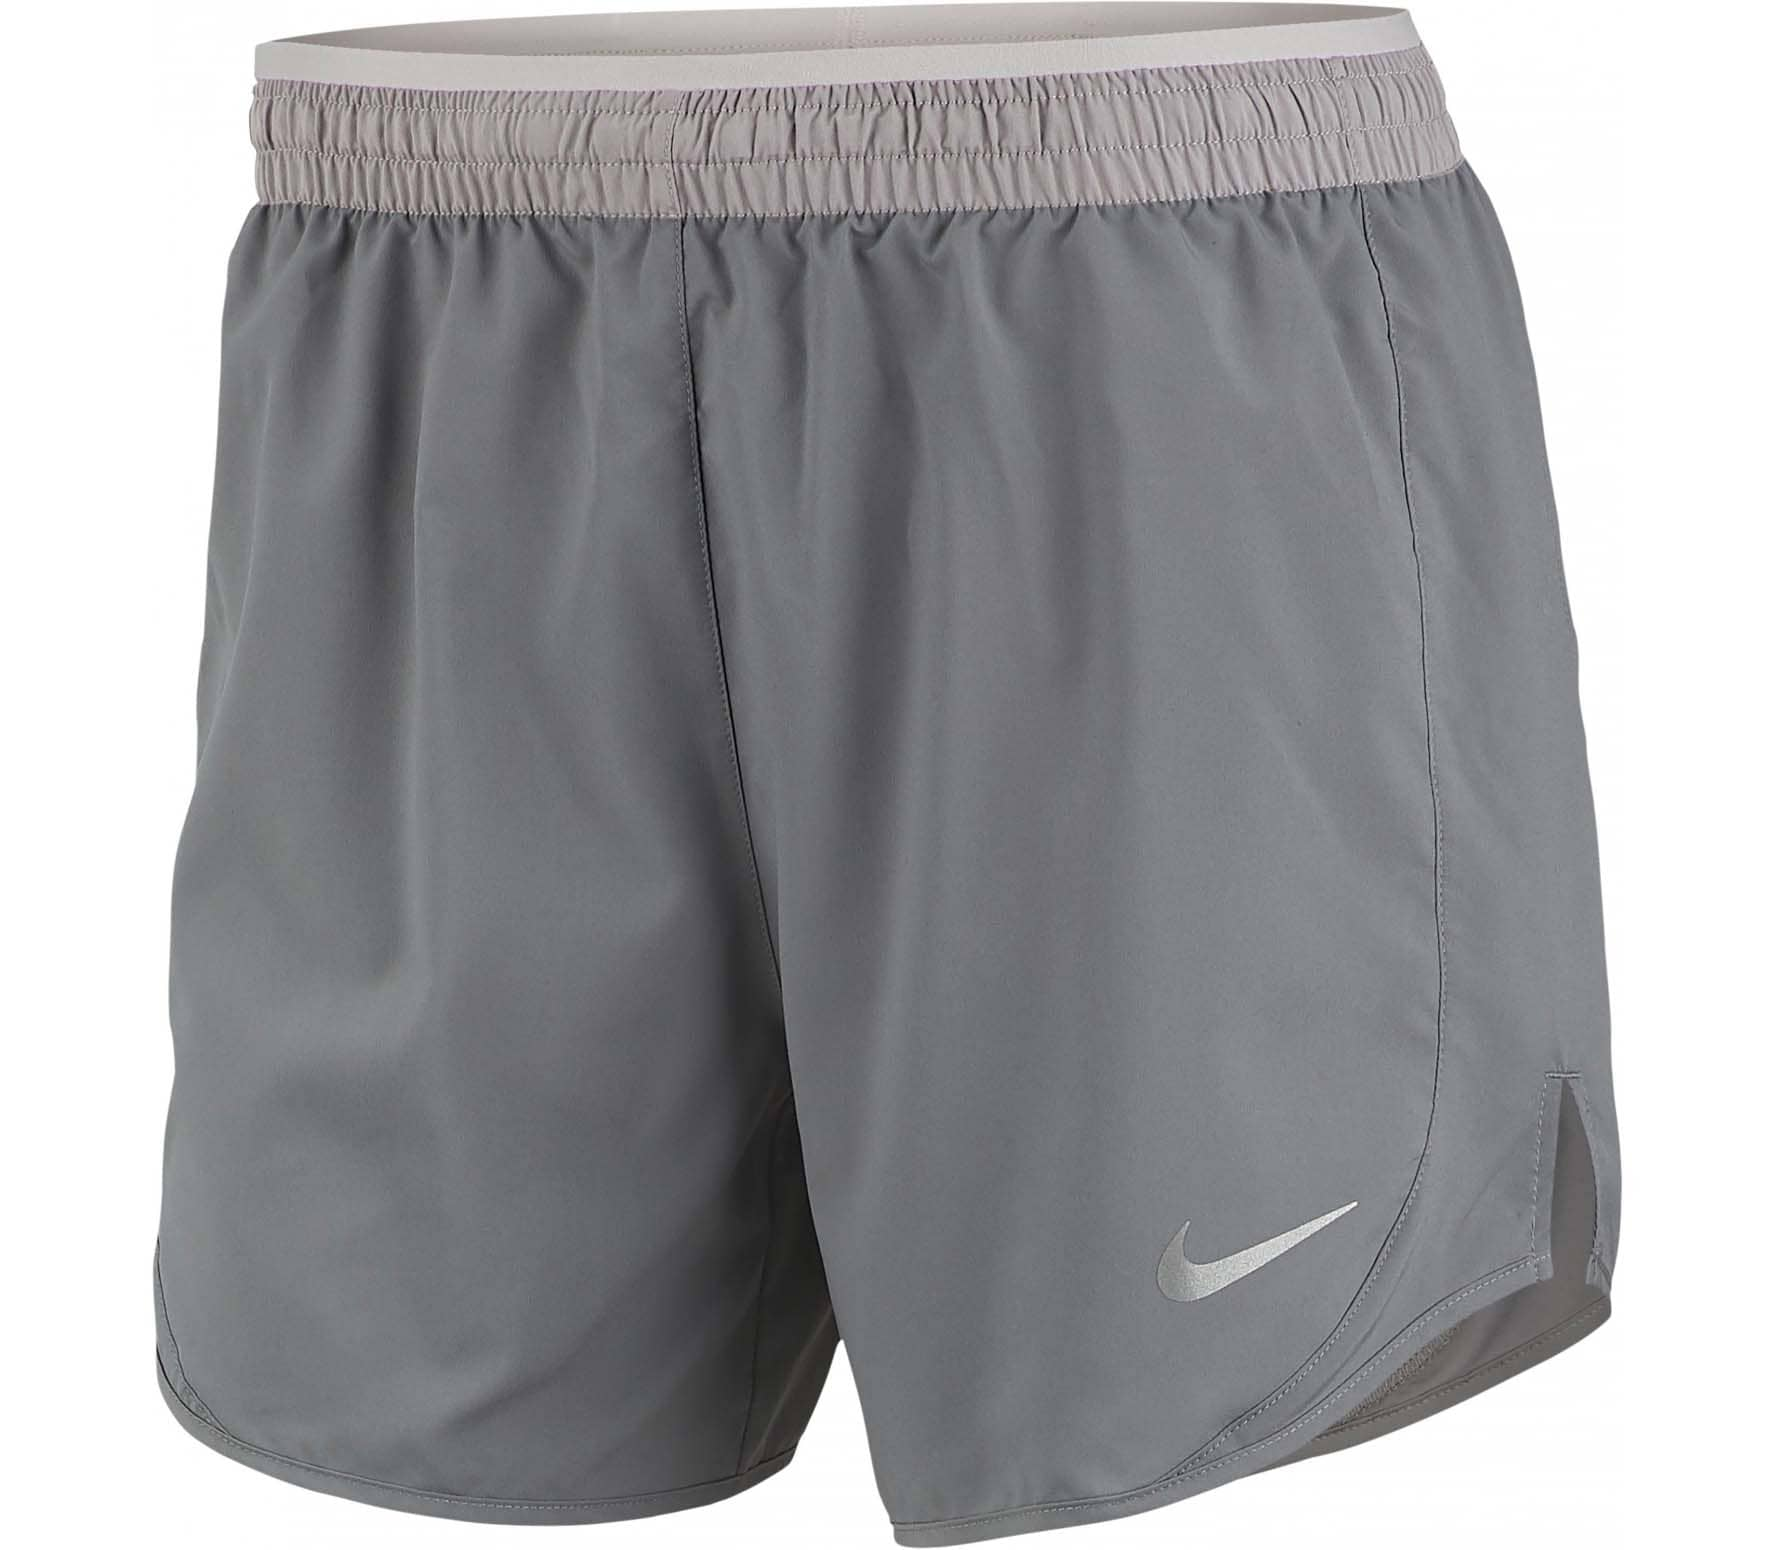 cadcea22a Nike Tempo Lux Women Training Shorts grey - buy it at the Keller ...